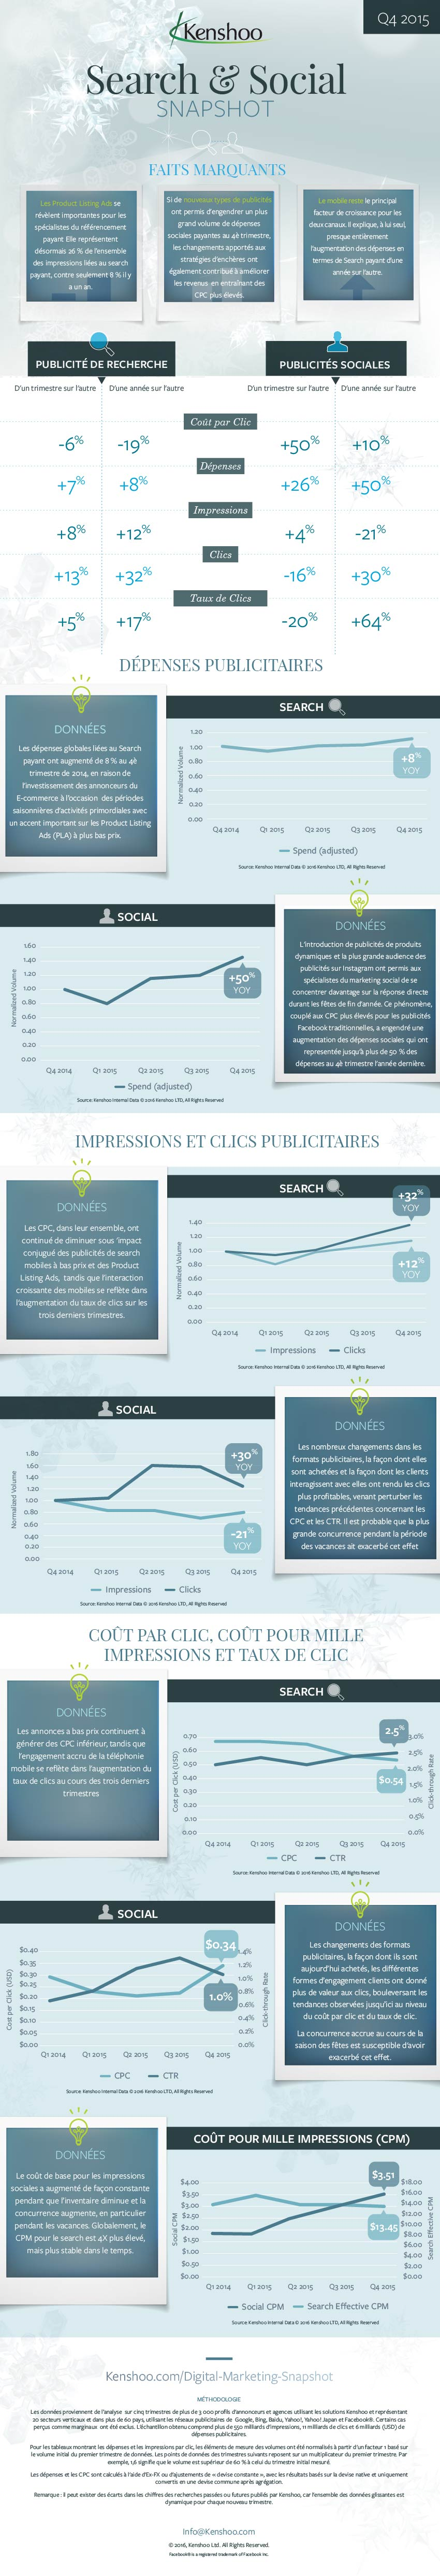 2015 Q4_Search and Social Trends_Global_French-01